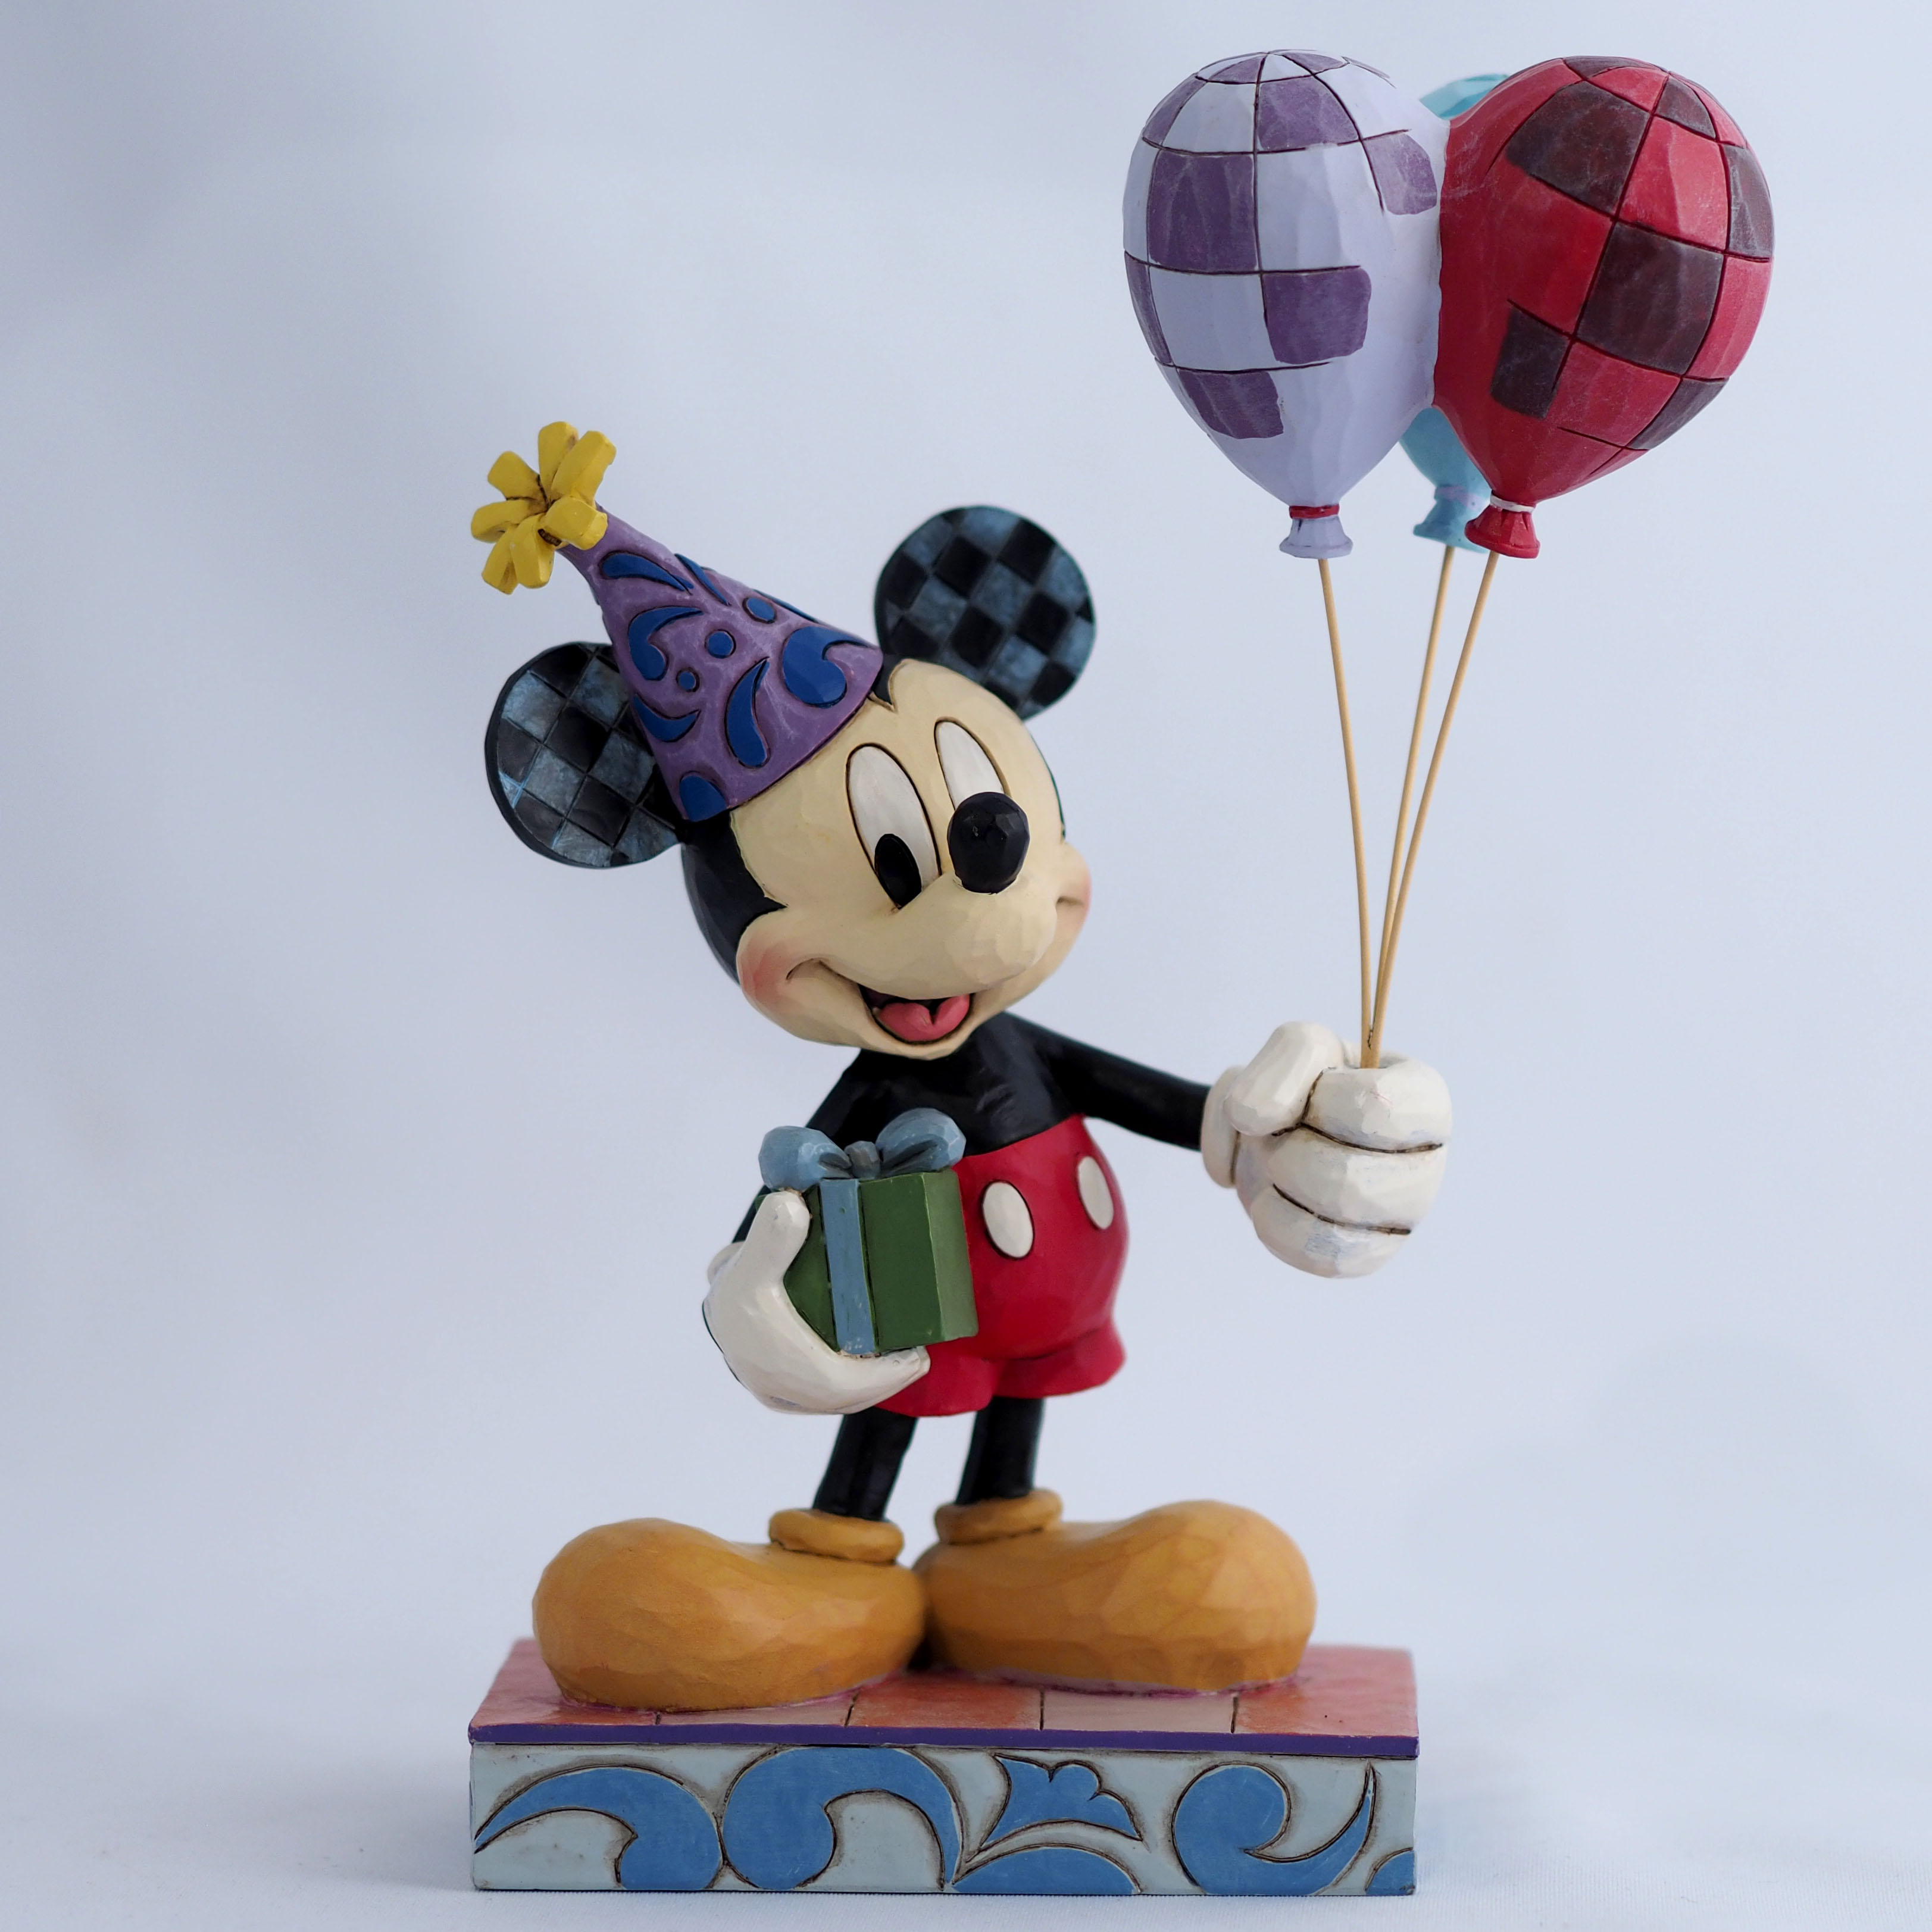 4013255 Mickey with Balloon(Cheerful Celebration)